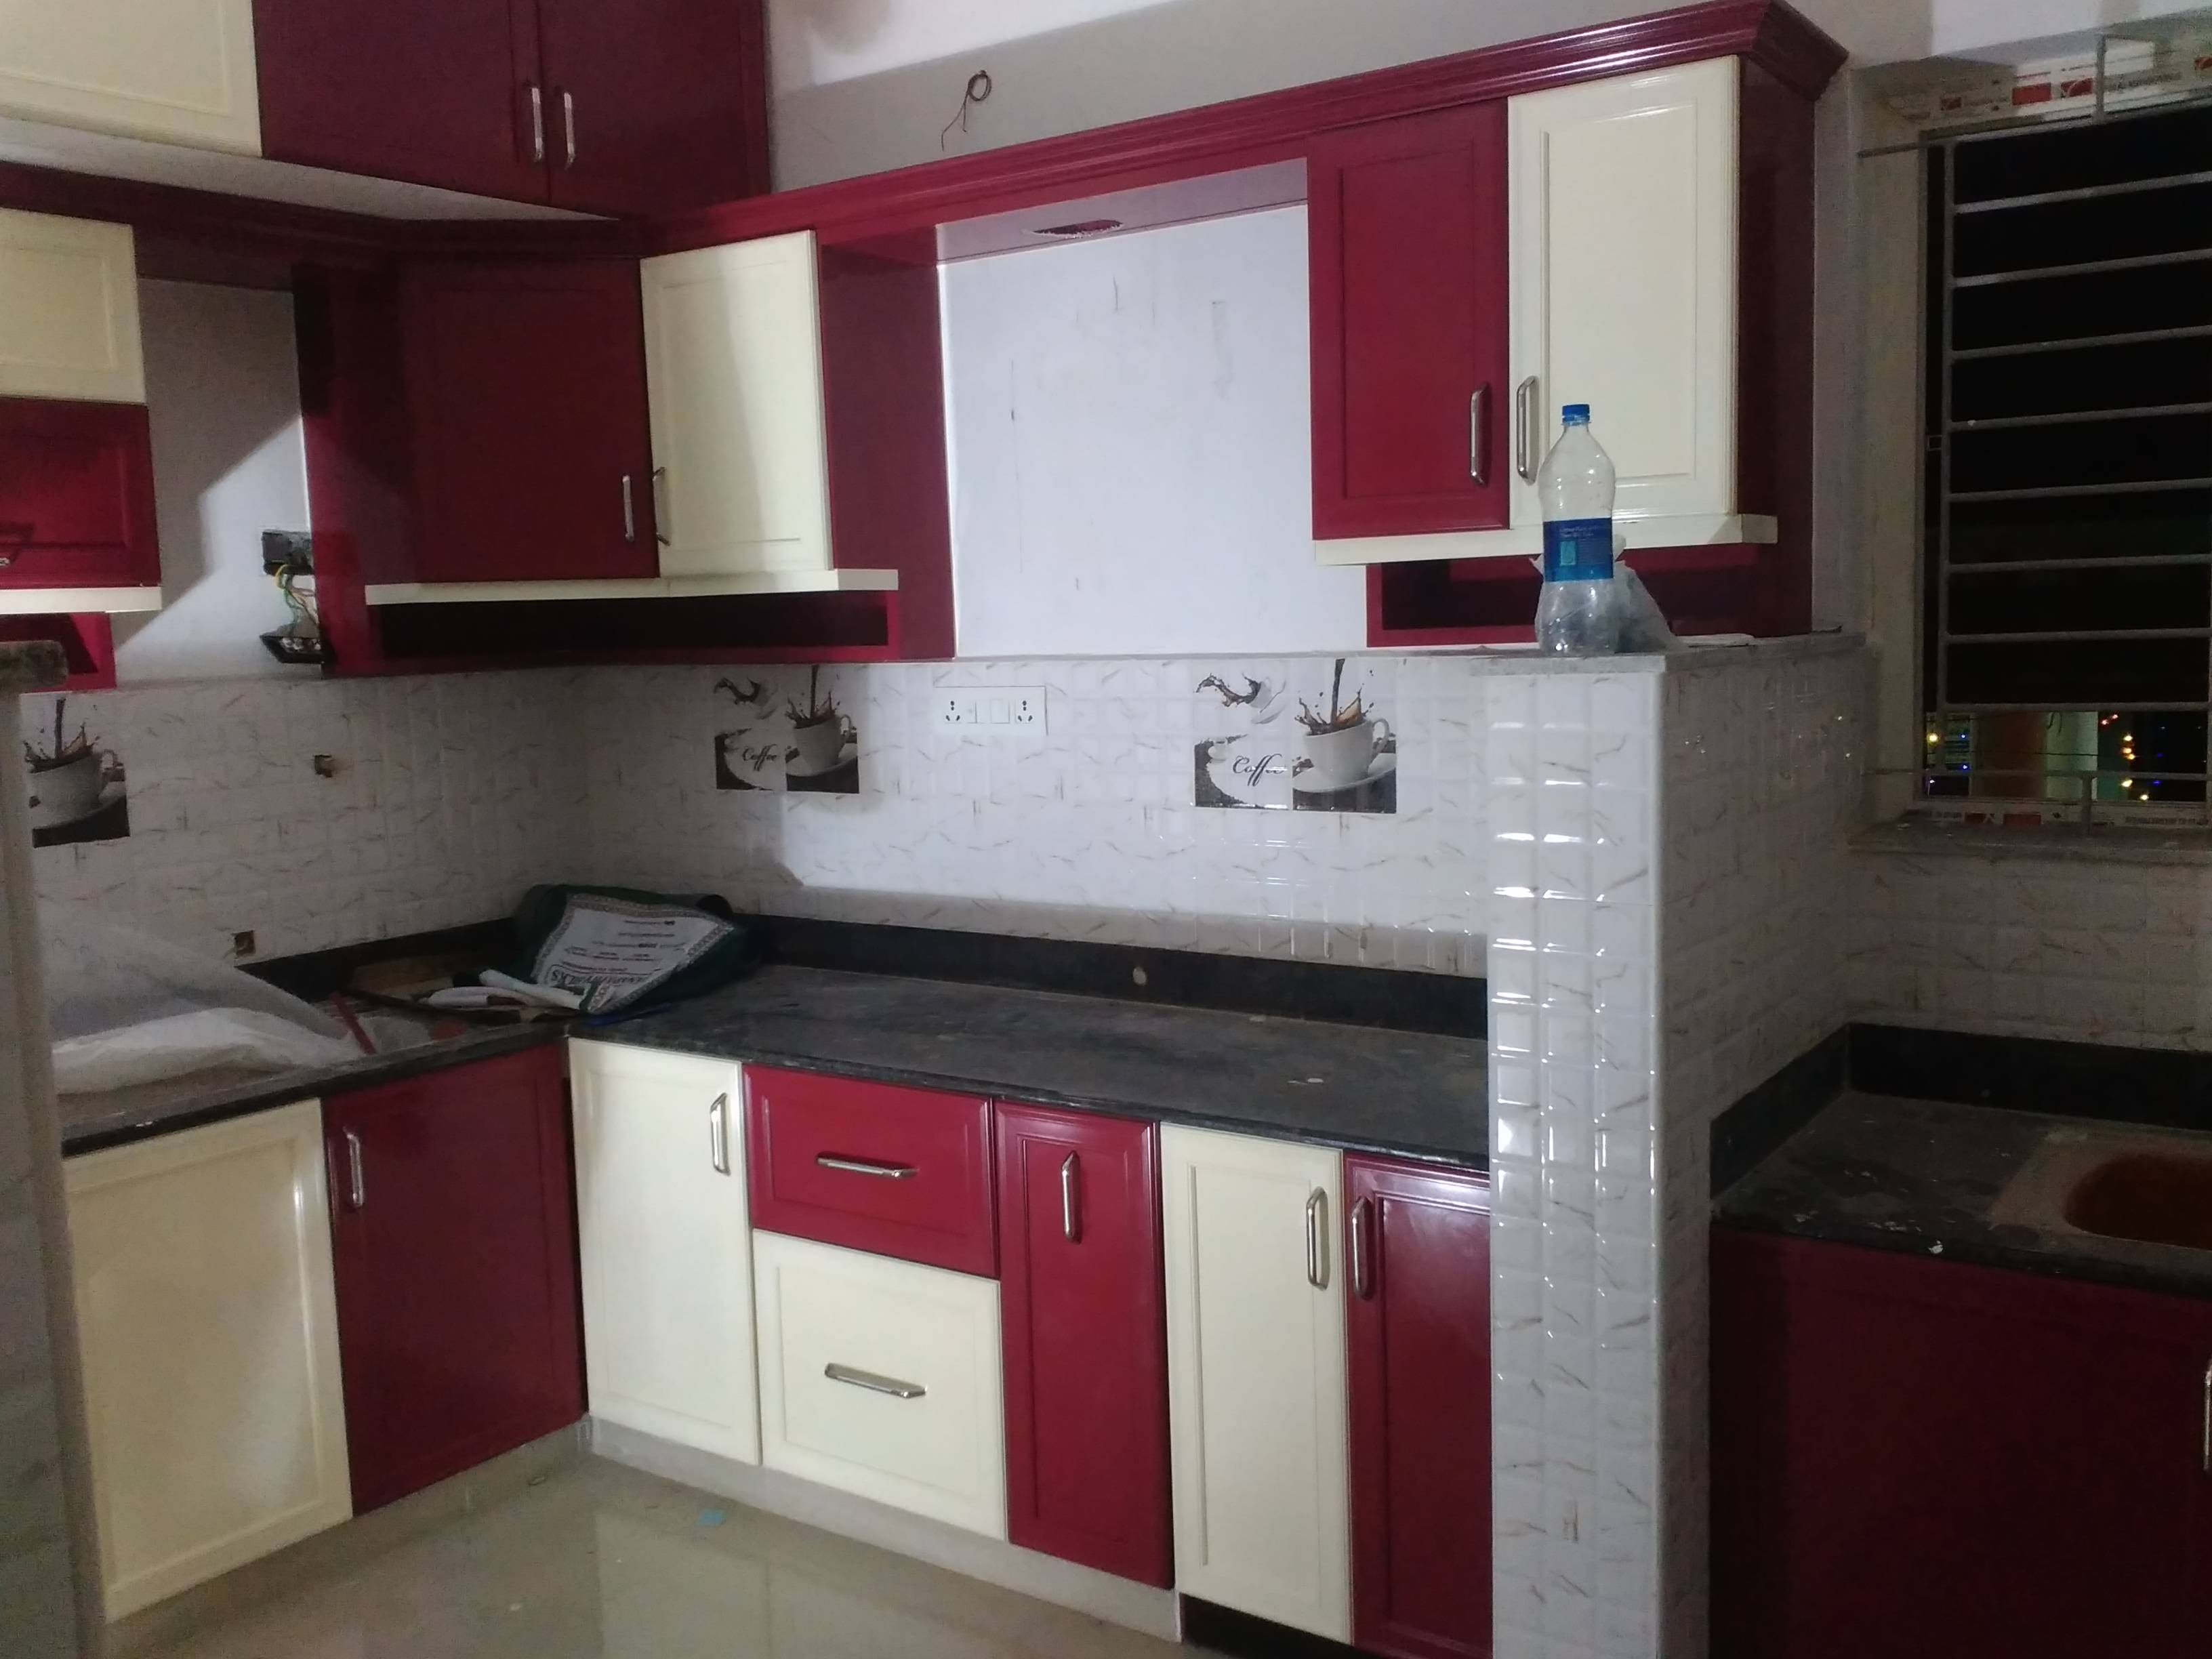 Elegant Aluminum Modular Kitchen Stylish ElegantItalianAluminumModularKitchen Design with All Acessiories for details 9443124016, 9442624016